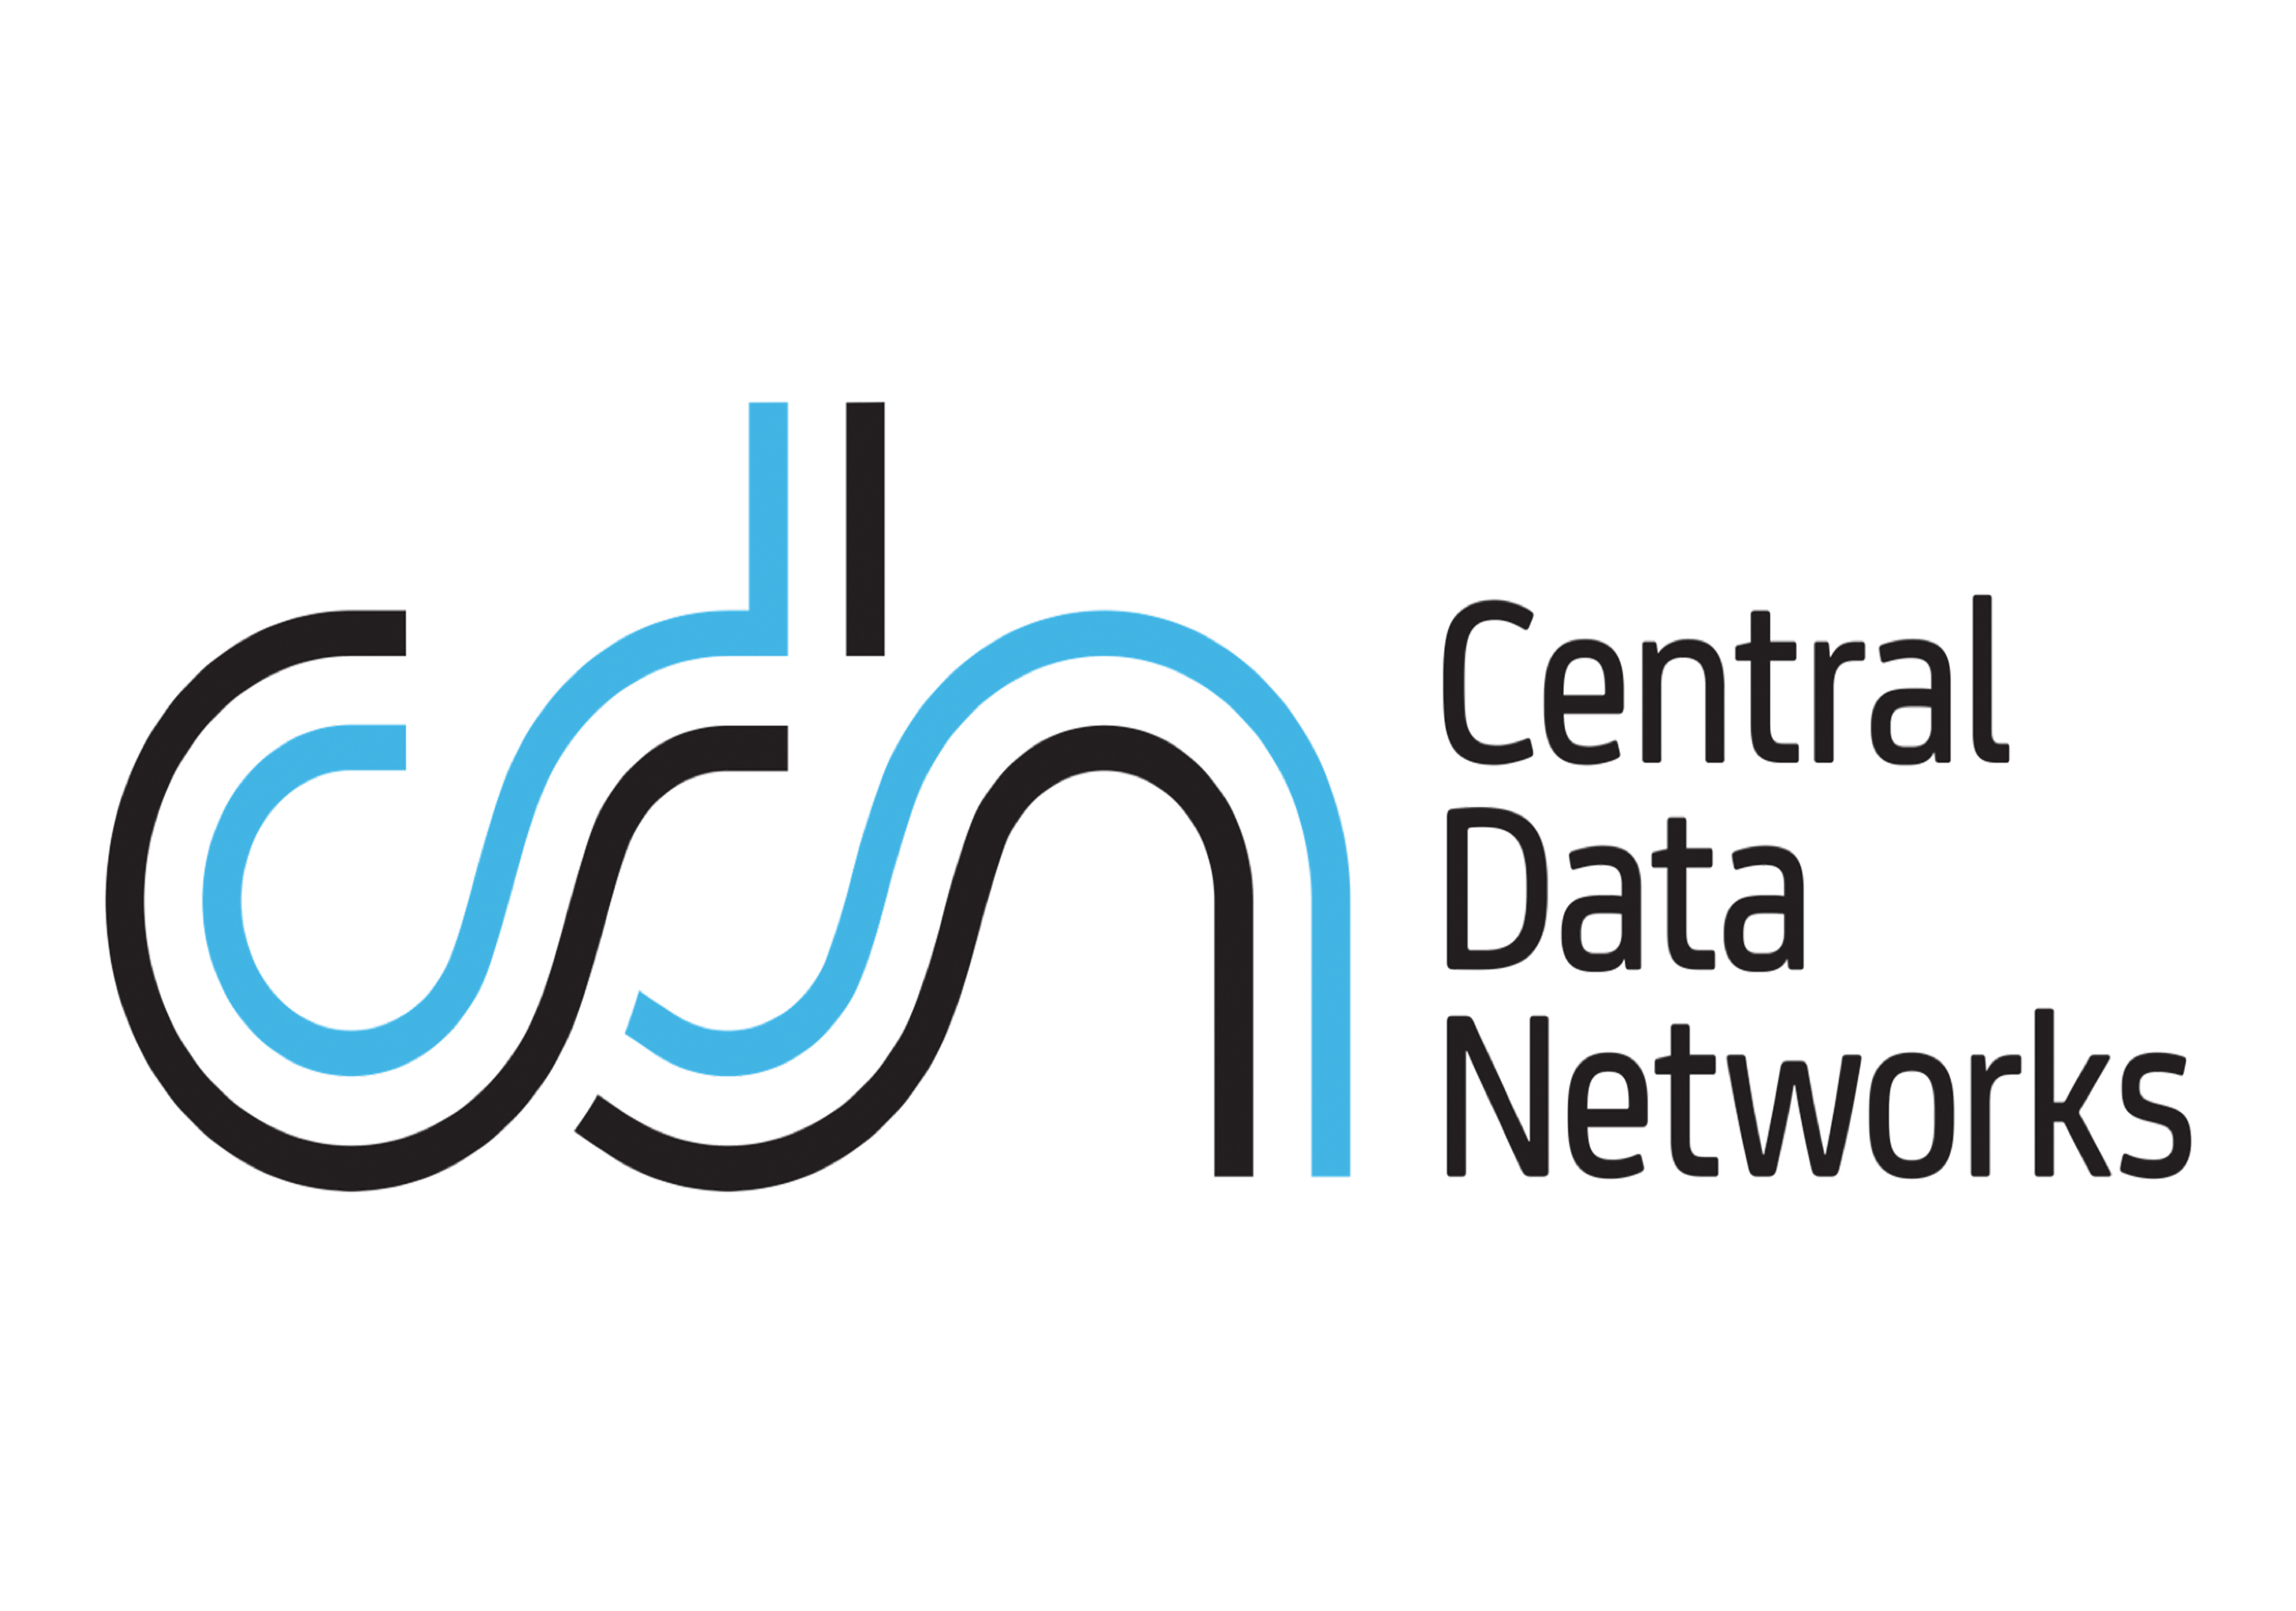 Central Data Networks